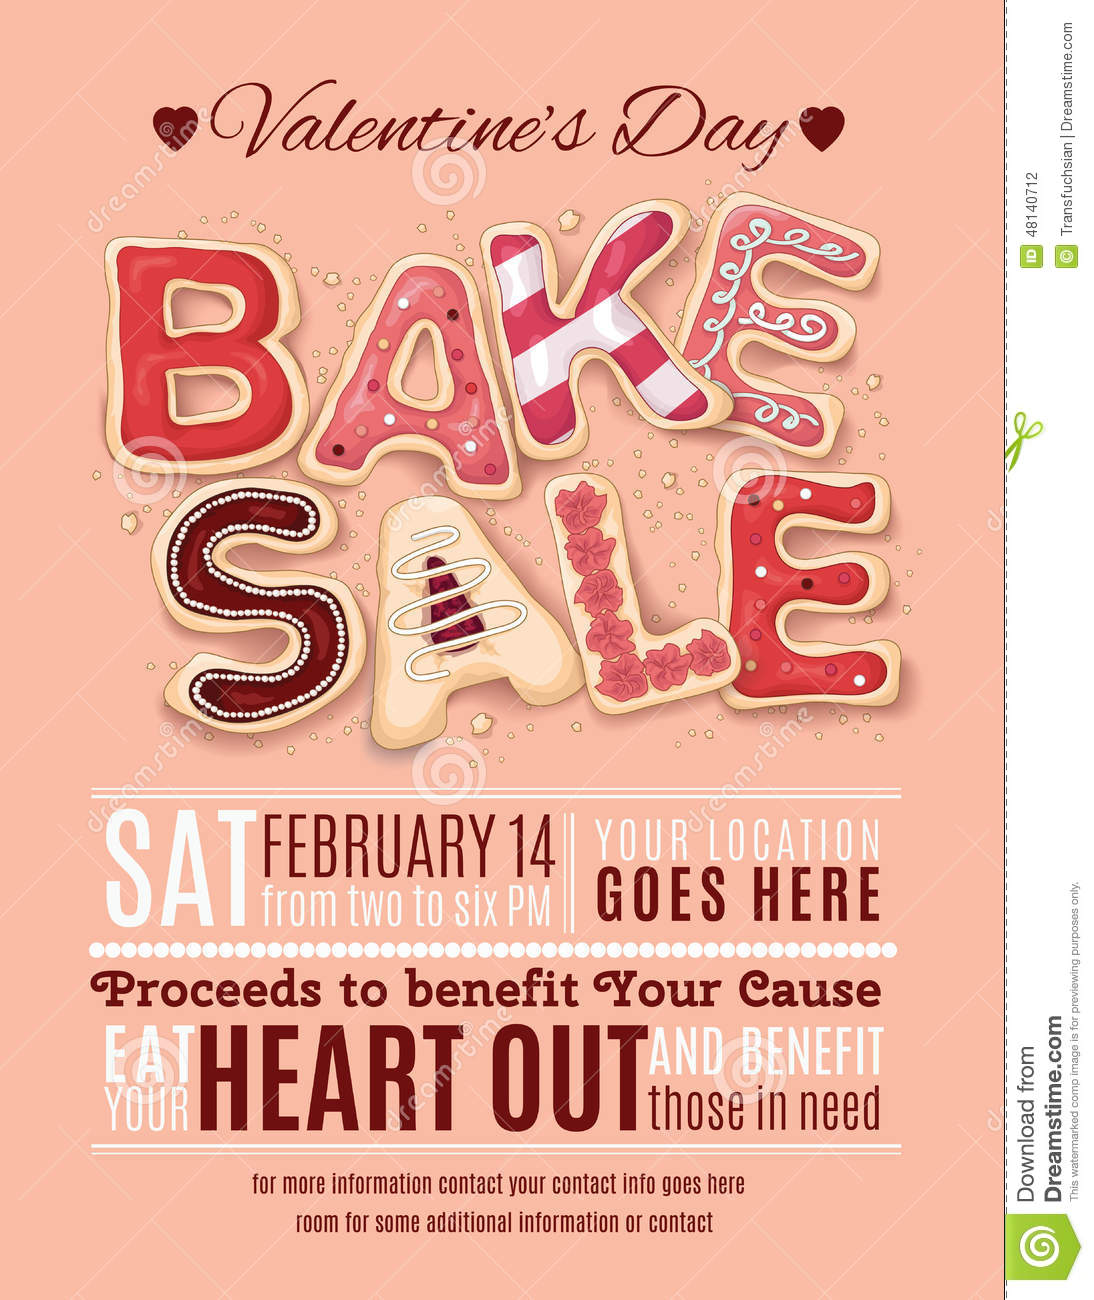 family fun day flyers vol on behance registration open for valentines day bake flyer template stock vector image 48140712 fun poster templates